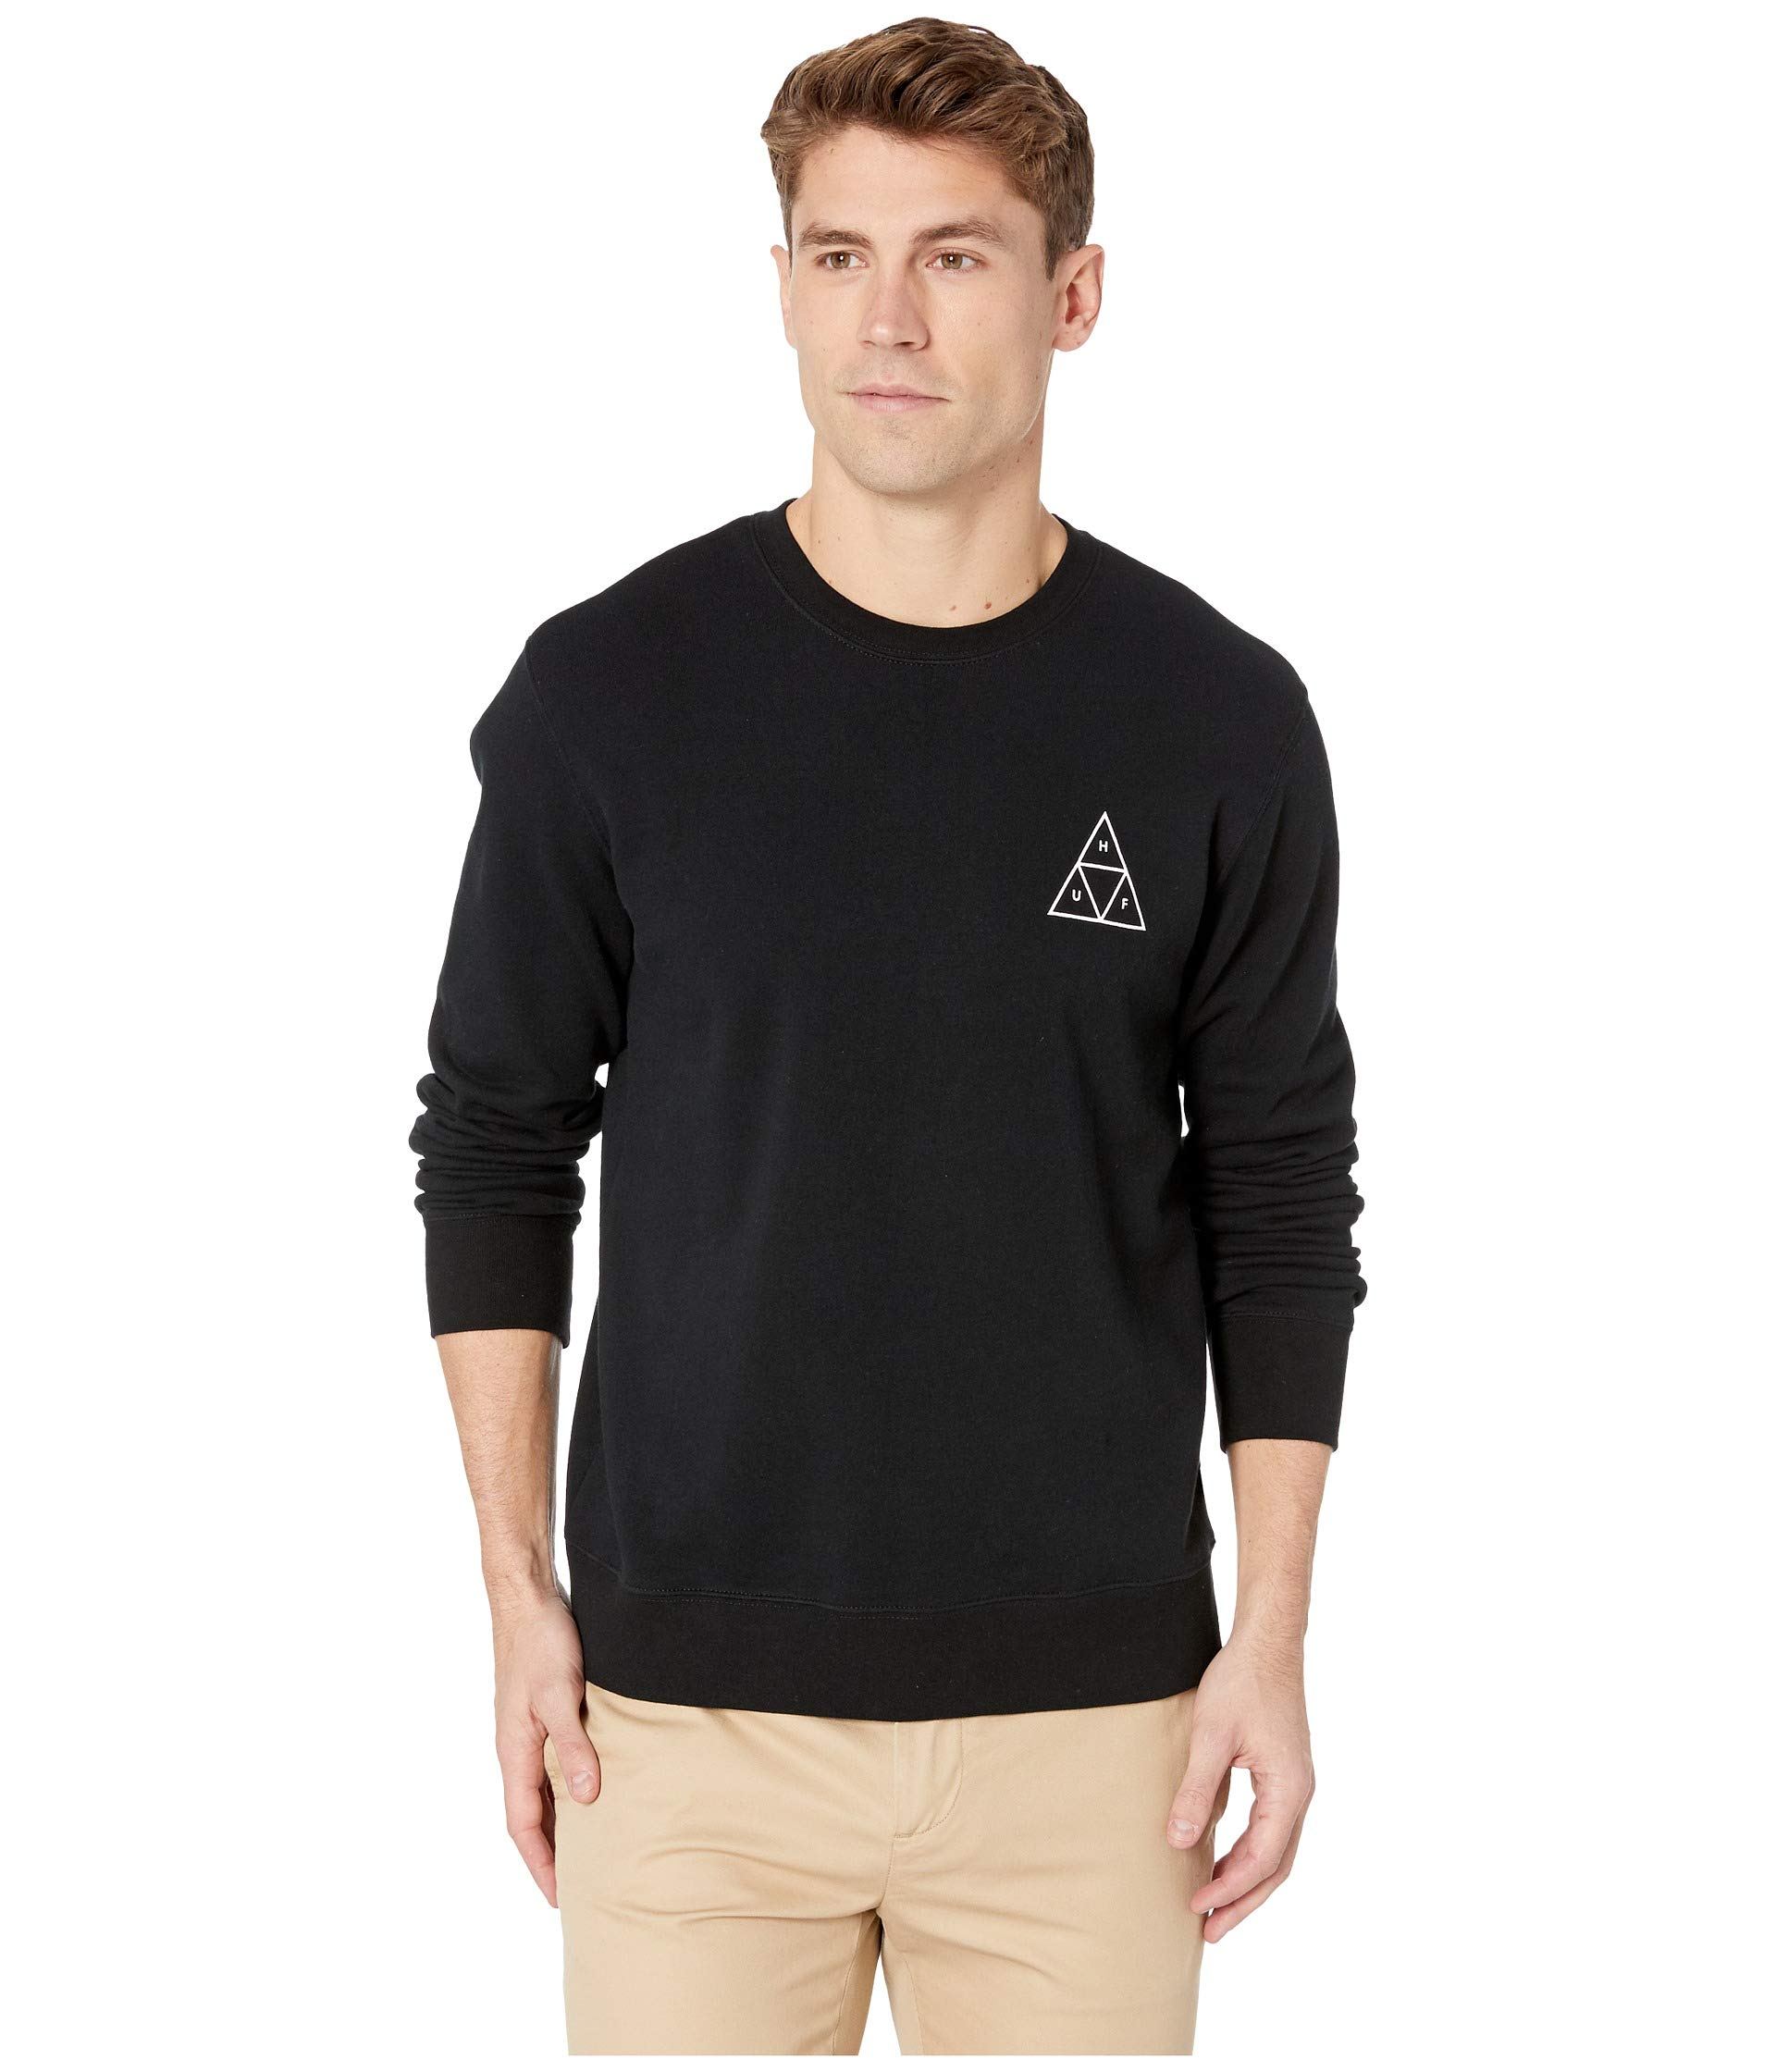 Tt Huf Essentials Huf Tt Crew Black Essentials Tt Huf Black Essentials Crew dzYqqwOx